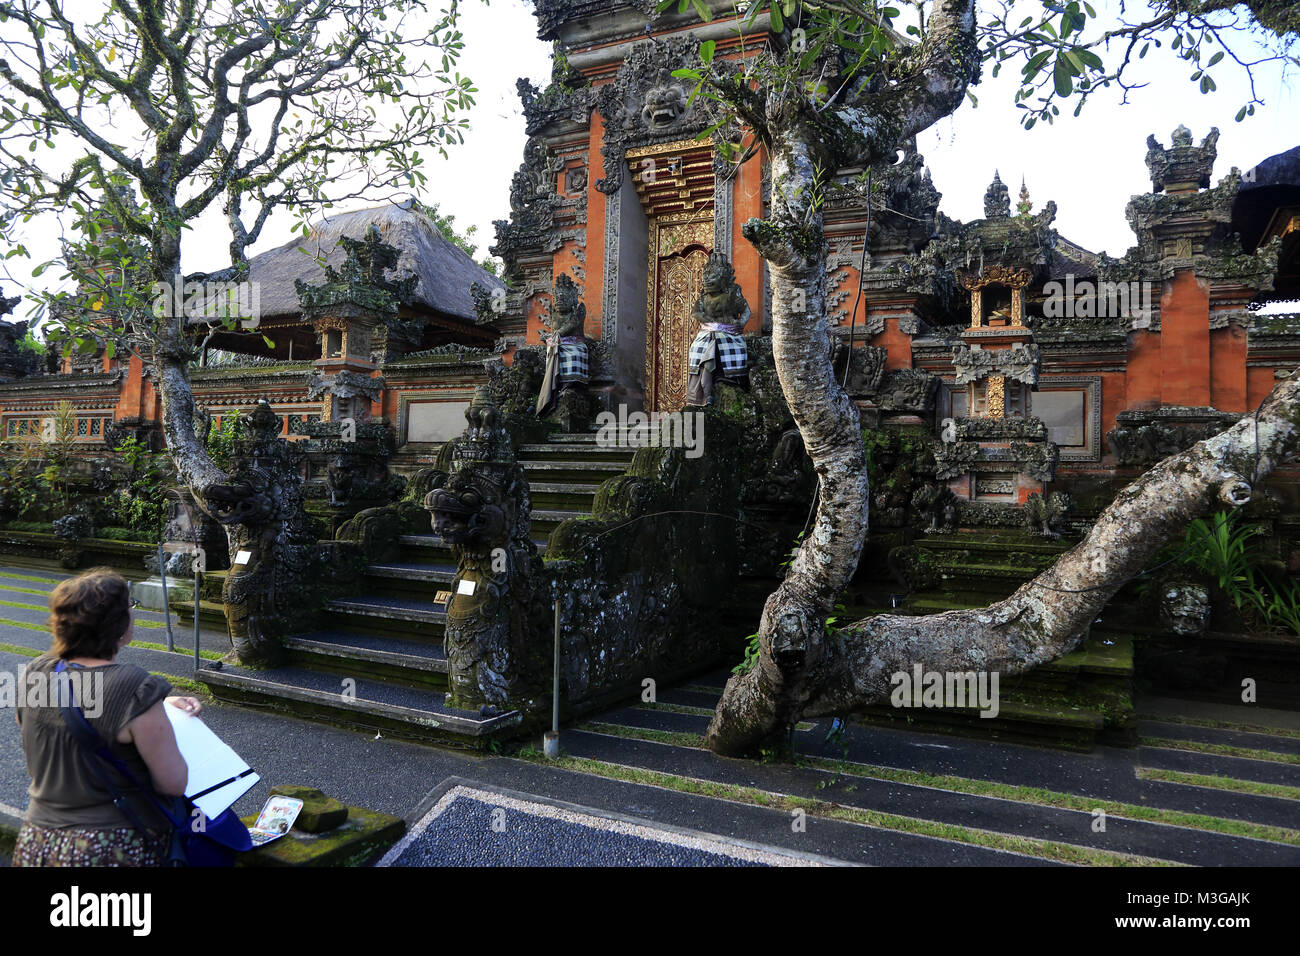 A tourist making sketch of the main entrance of Pura Taman Saraswati Temple.Ubud.Bali.Indonesia - Stock Image